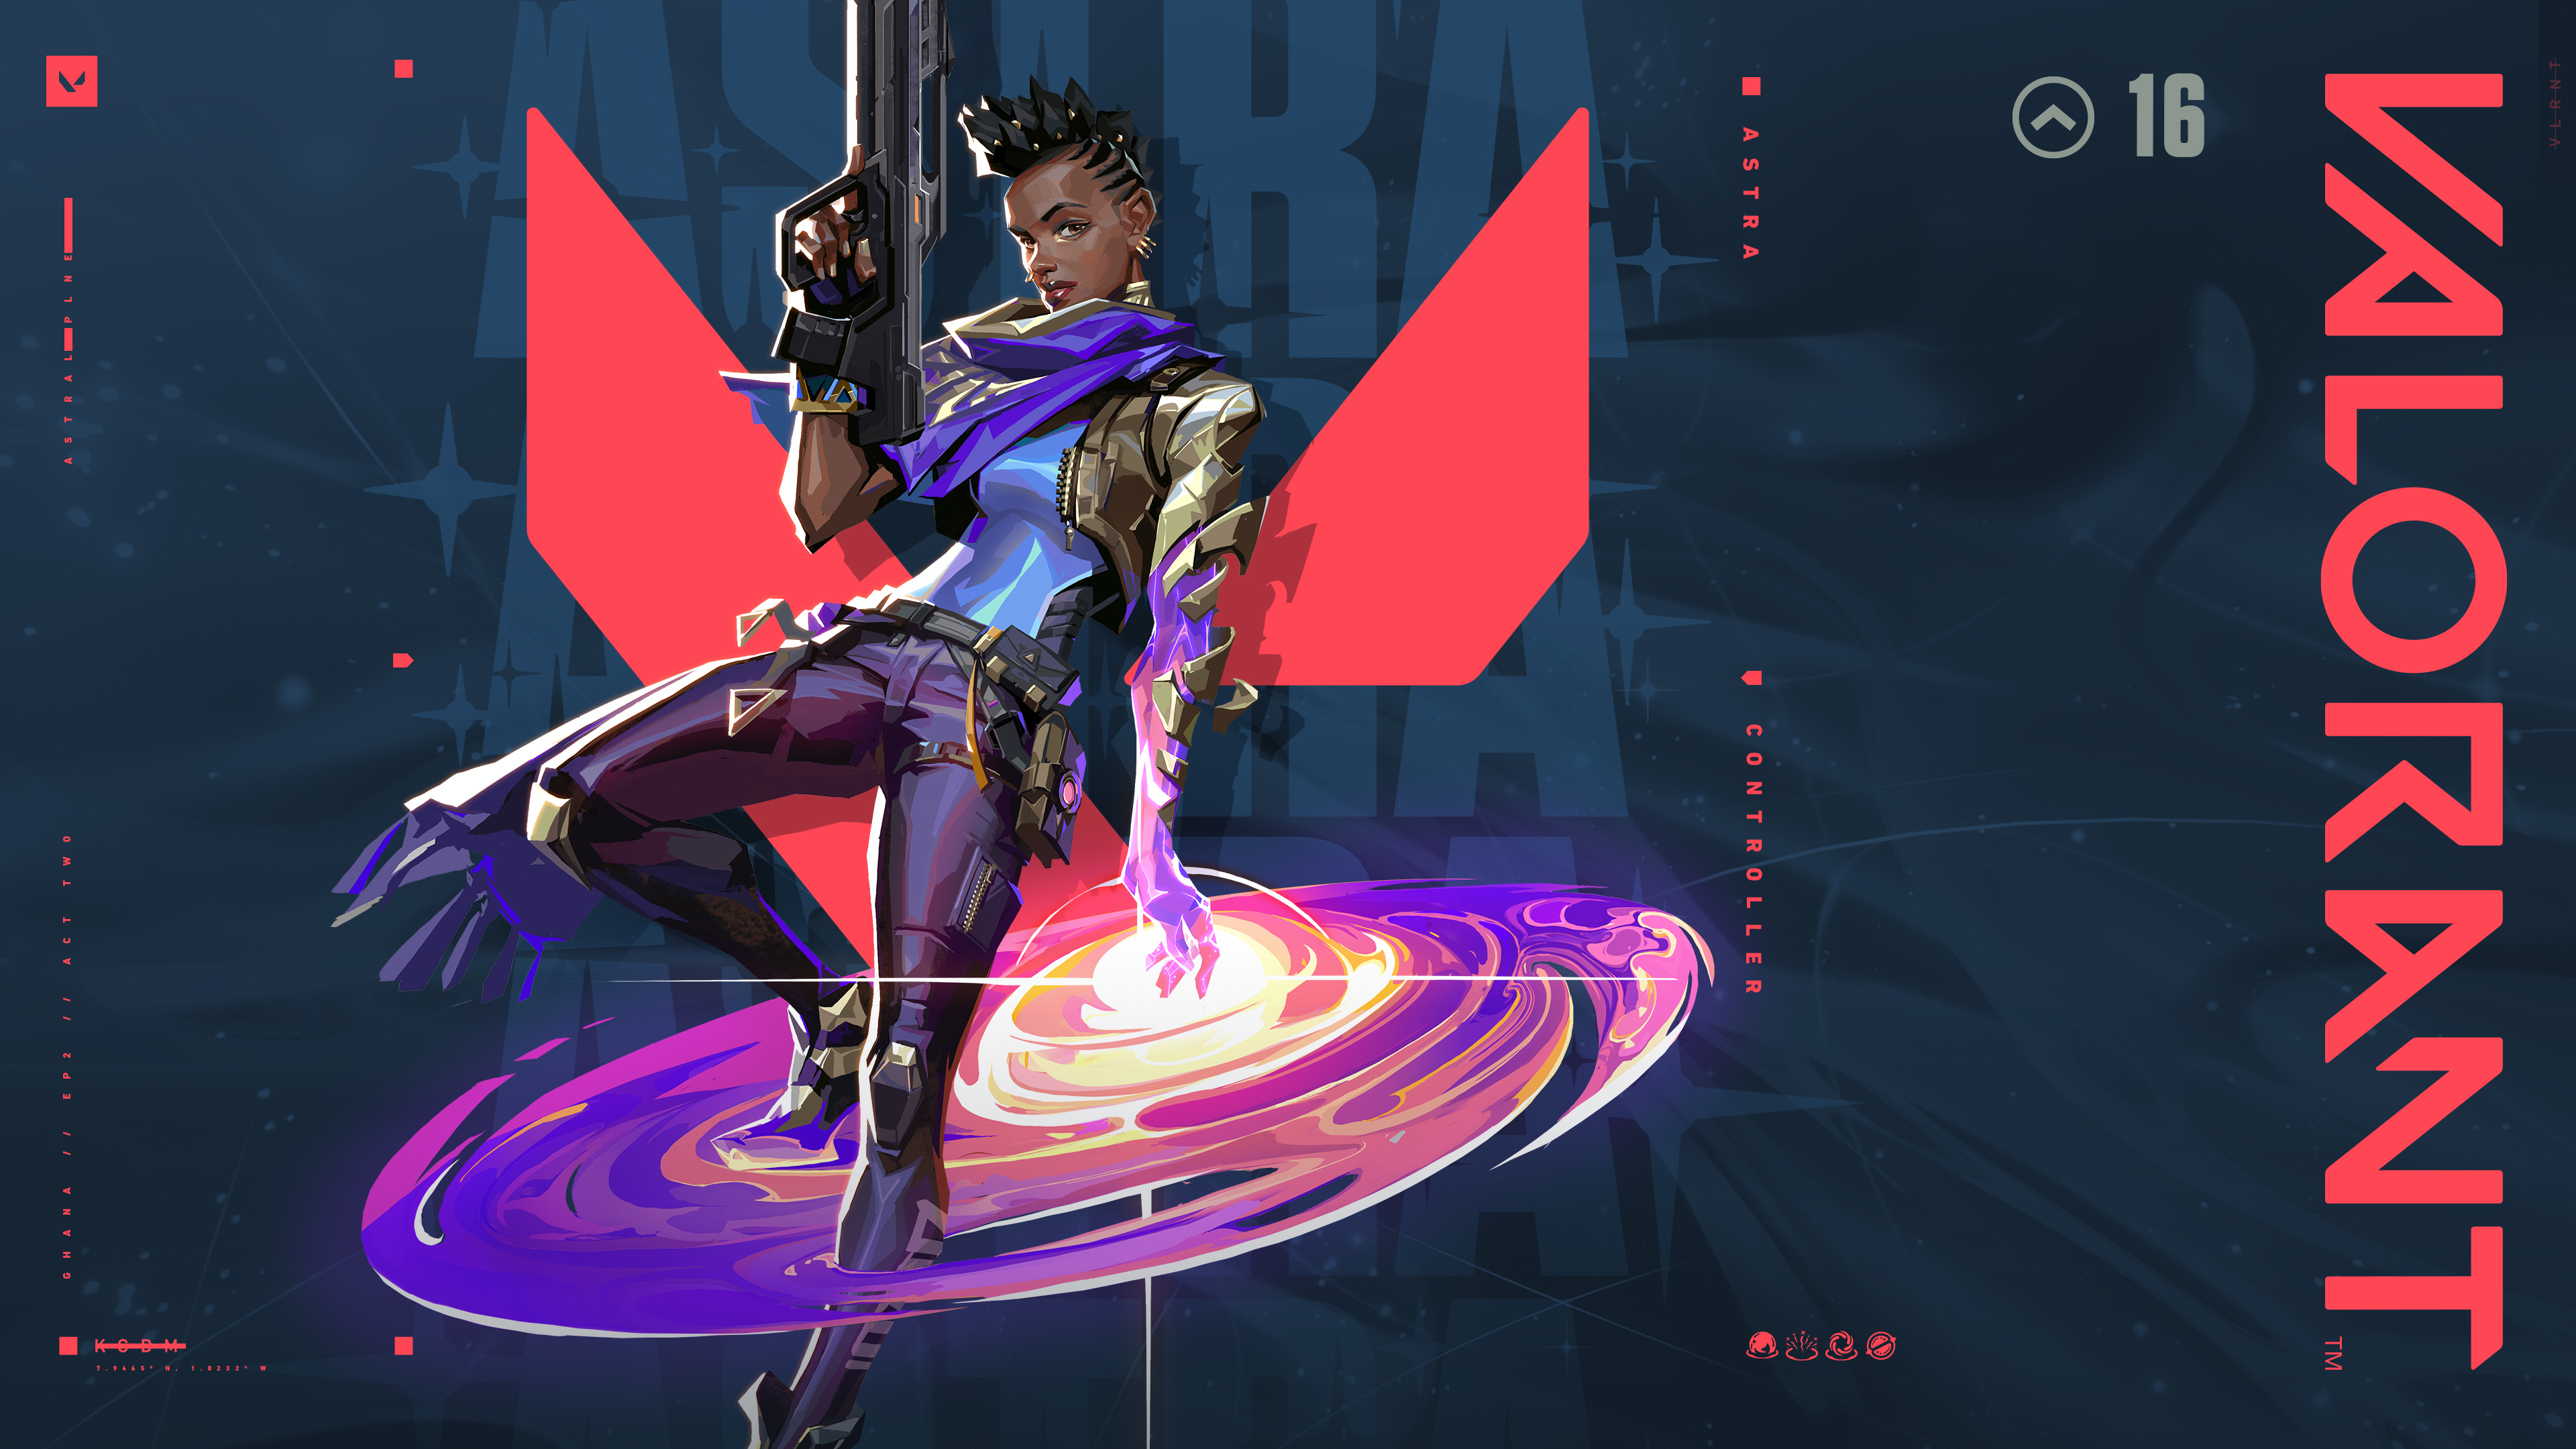 Astra from Valorant posing against the game's logo